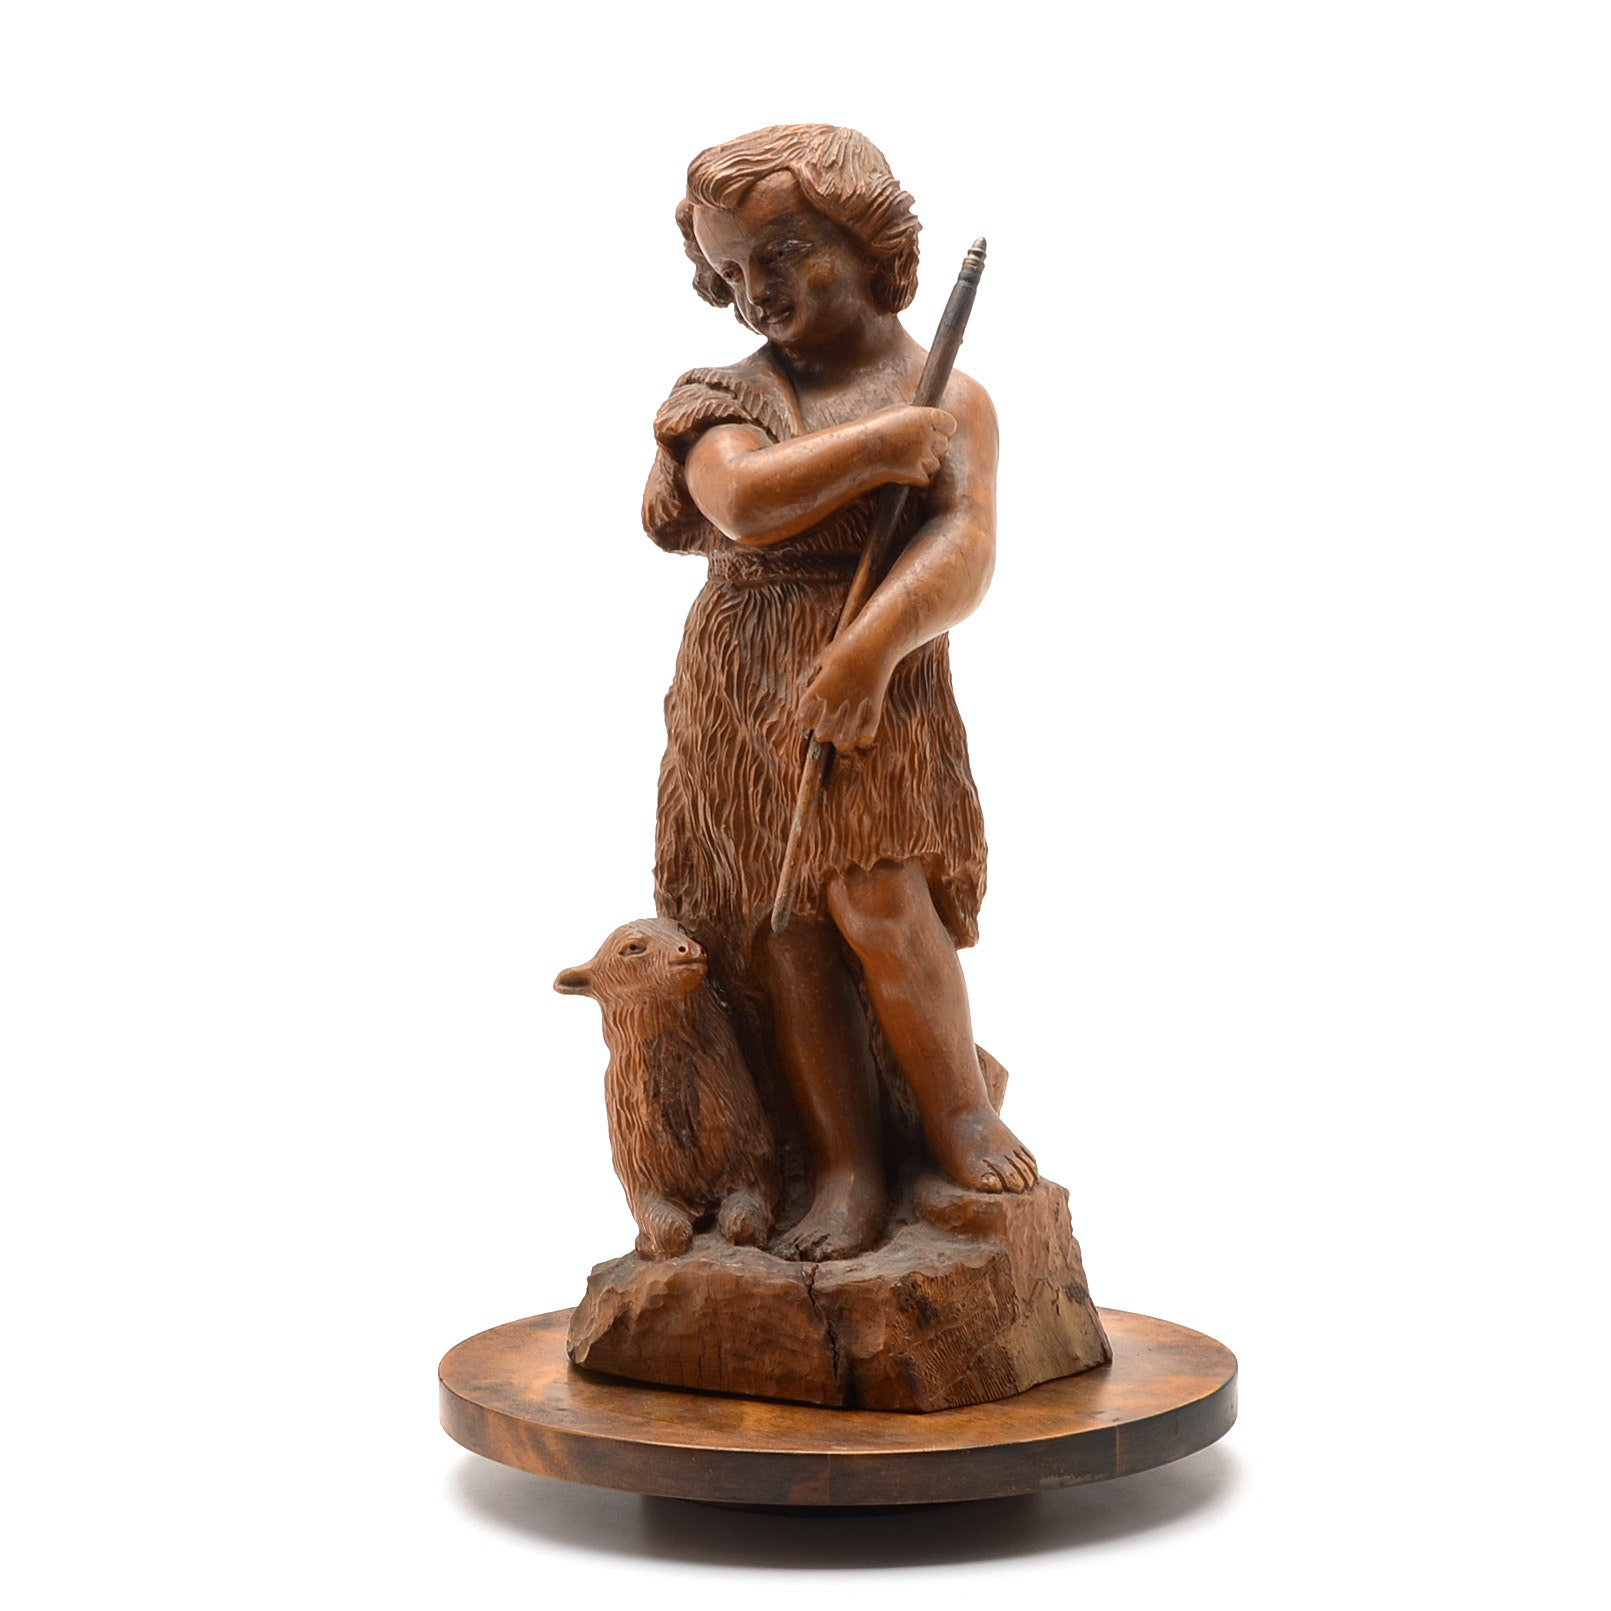 1870 Hakob Avakyan Carved Wood Sculpture of Shepherd with Lamb